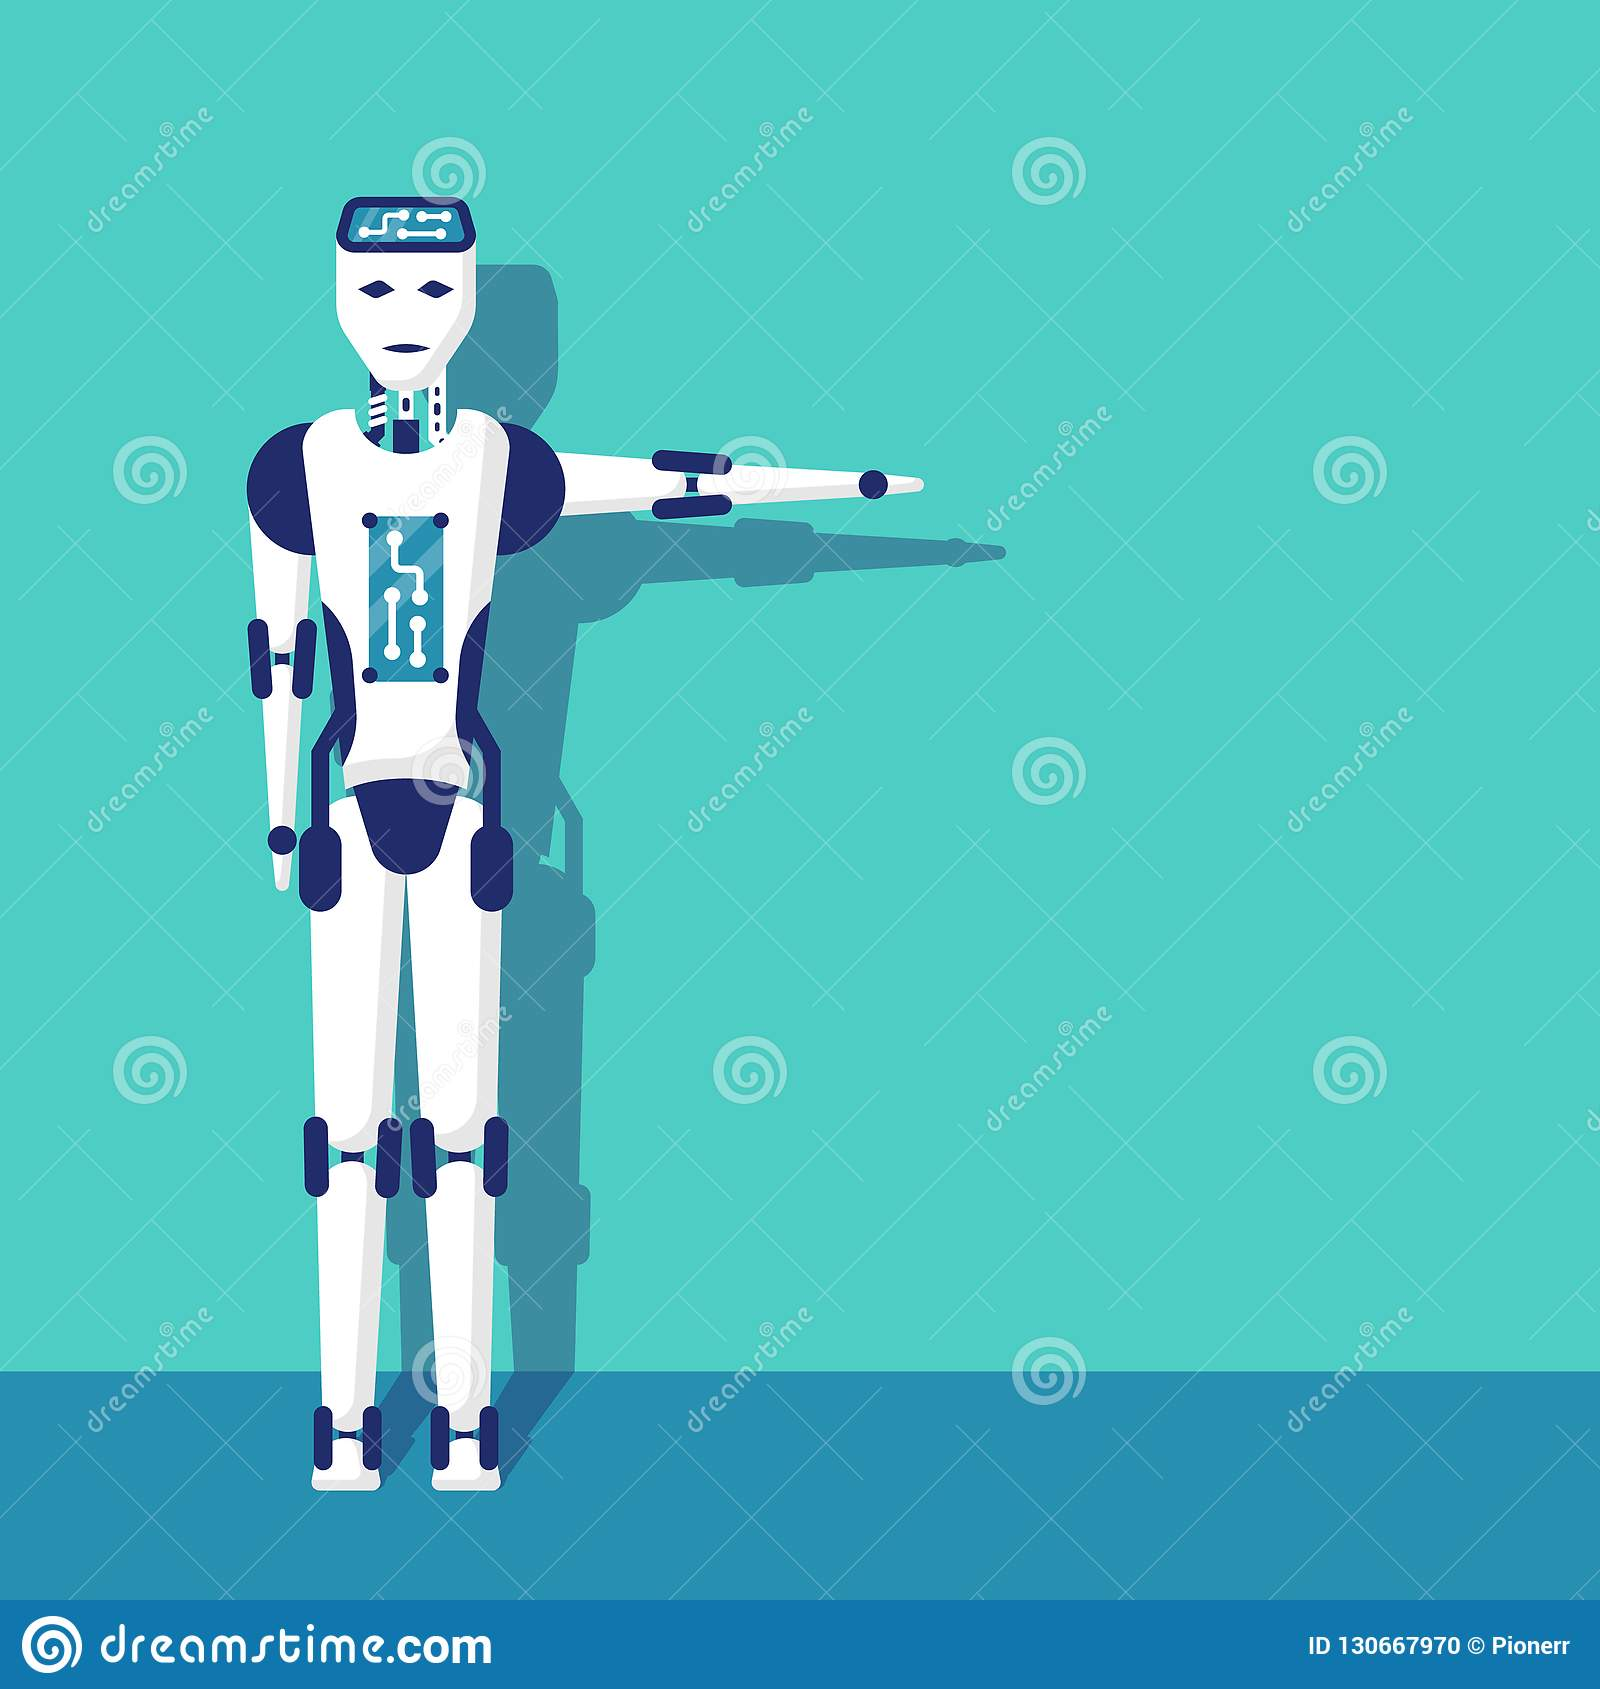 Robot arm pointing direction